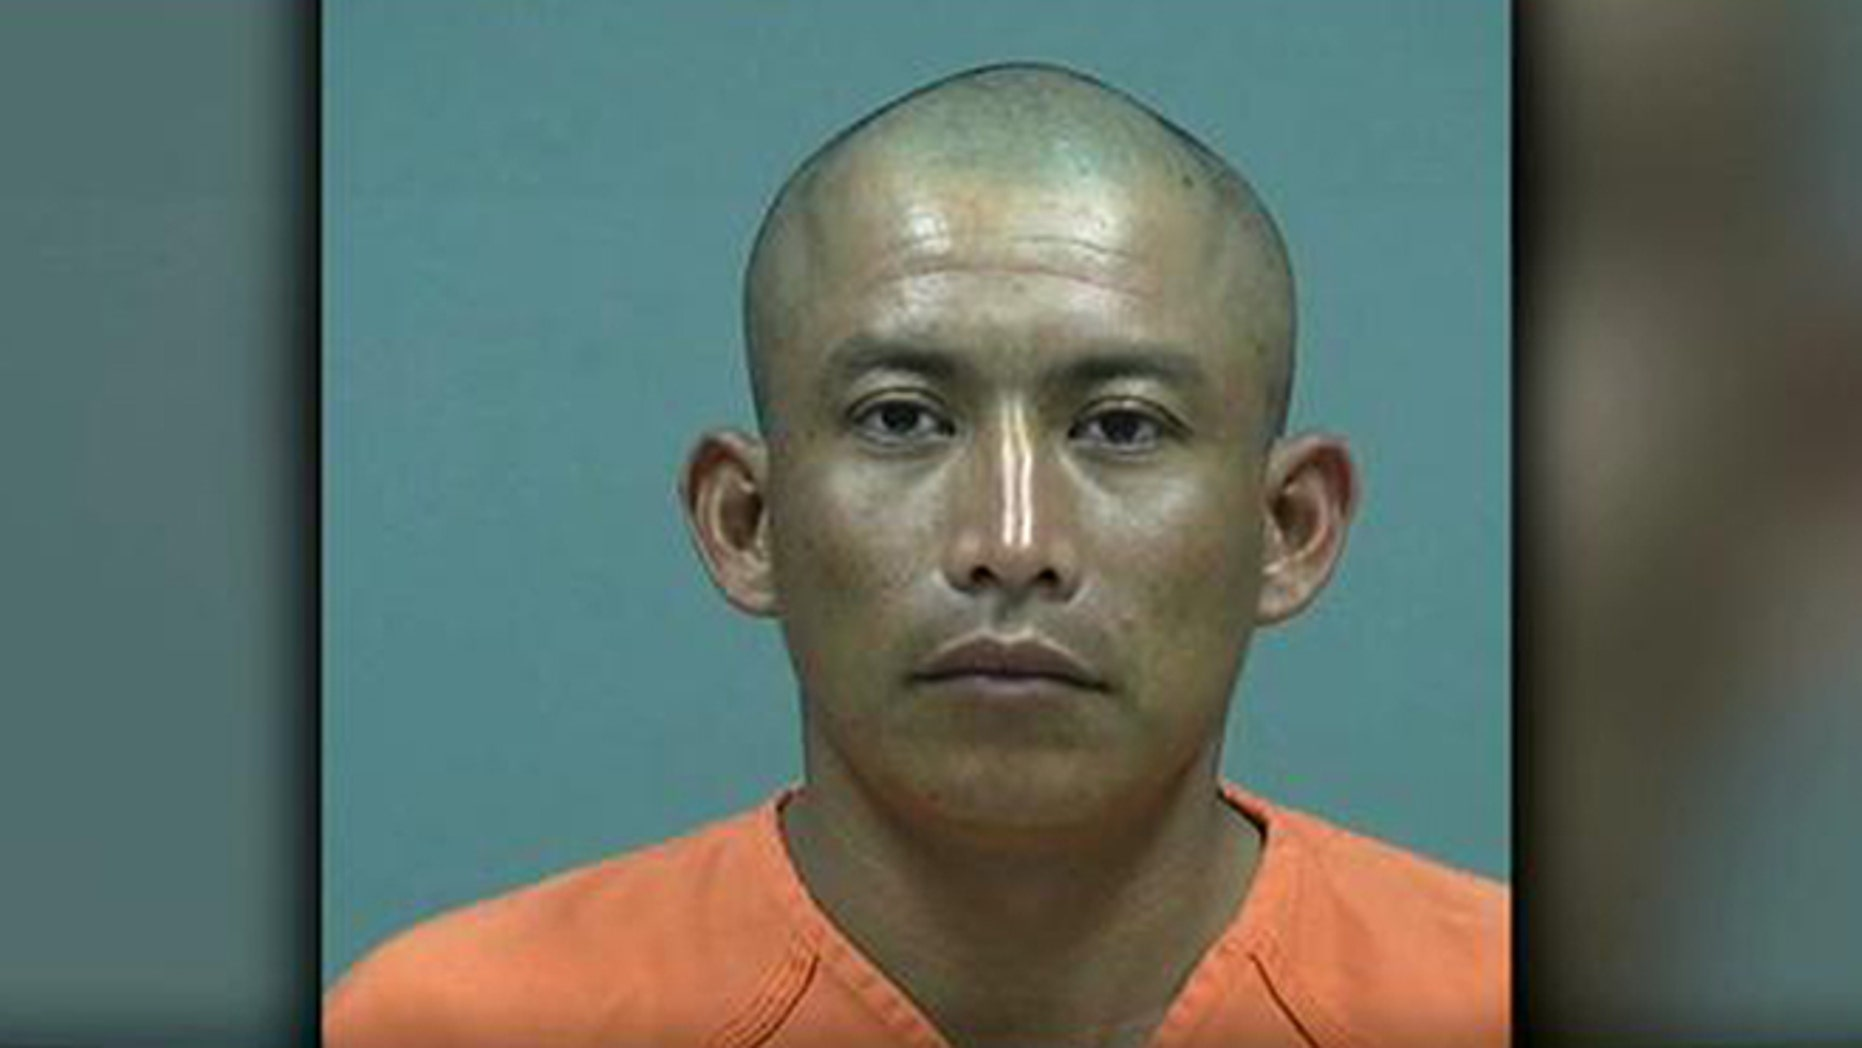 Suspect Manuel Perez-Vasquez is seen in this Pinal County Sheriff's office photo